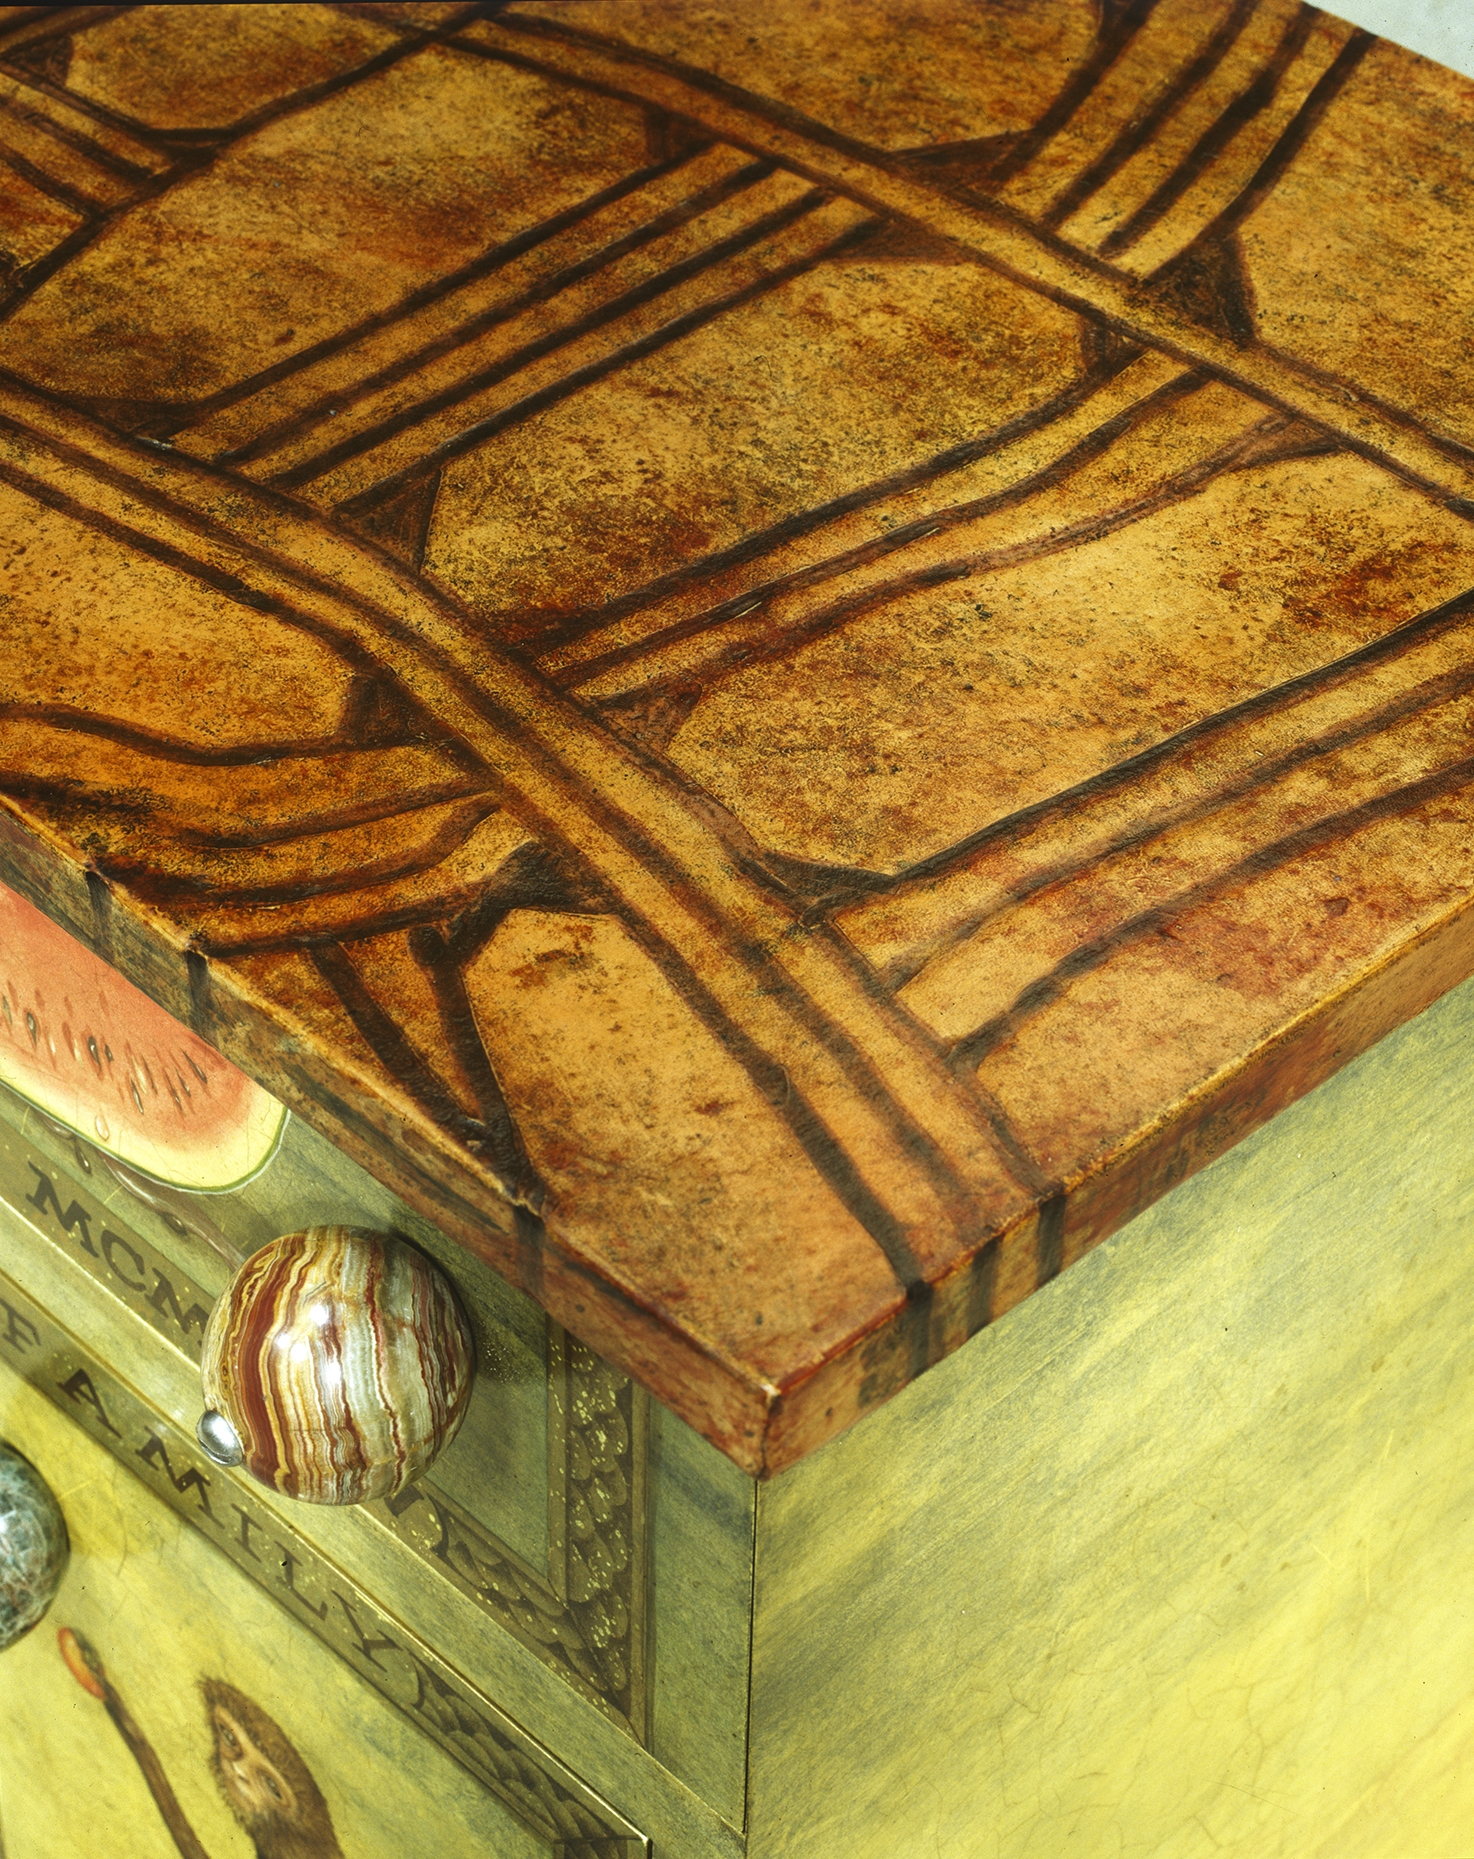 de'Medici Sideboard-top detail.jpg